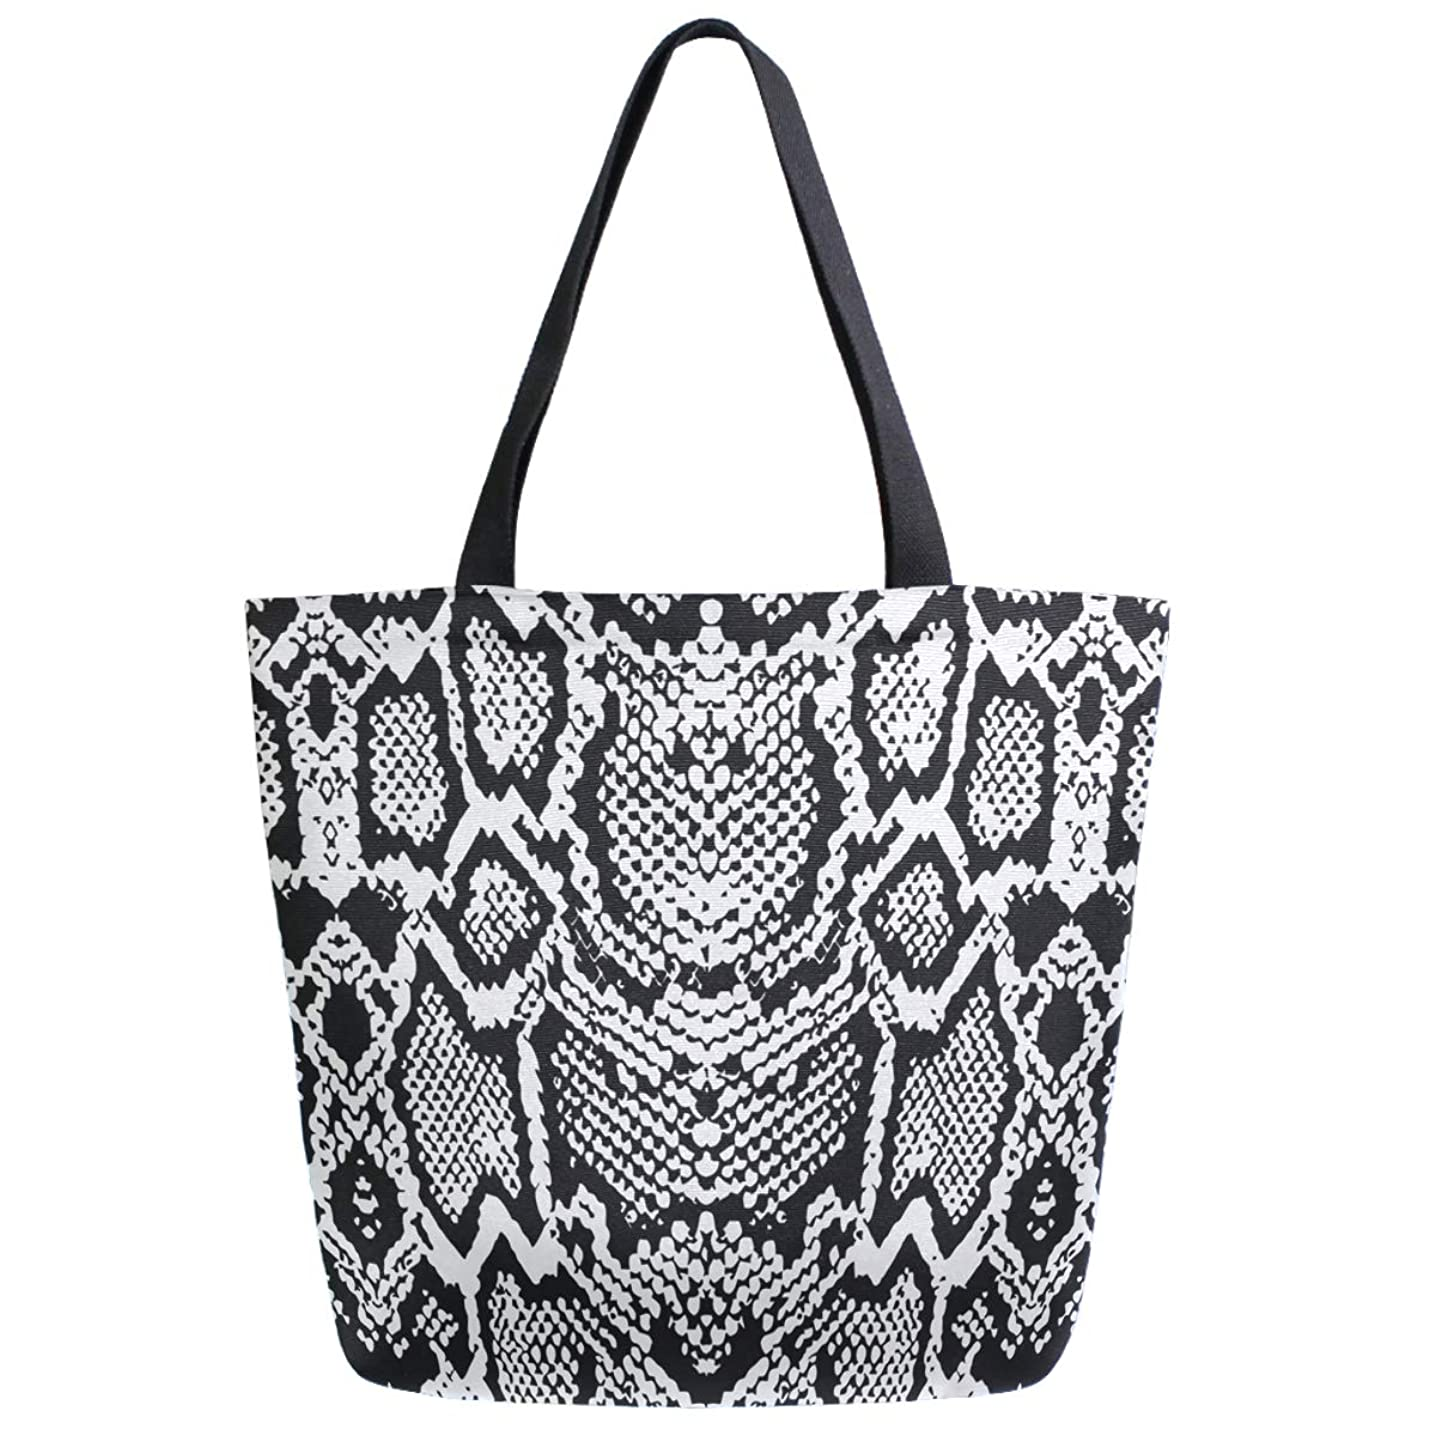 ZzWwR Trendy Black White Snake Skin Print Extra Large Canvas Shoulder Tote Handle Bag for Gym Beach Weekender Travel Shopping